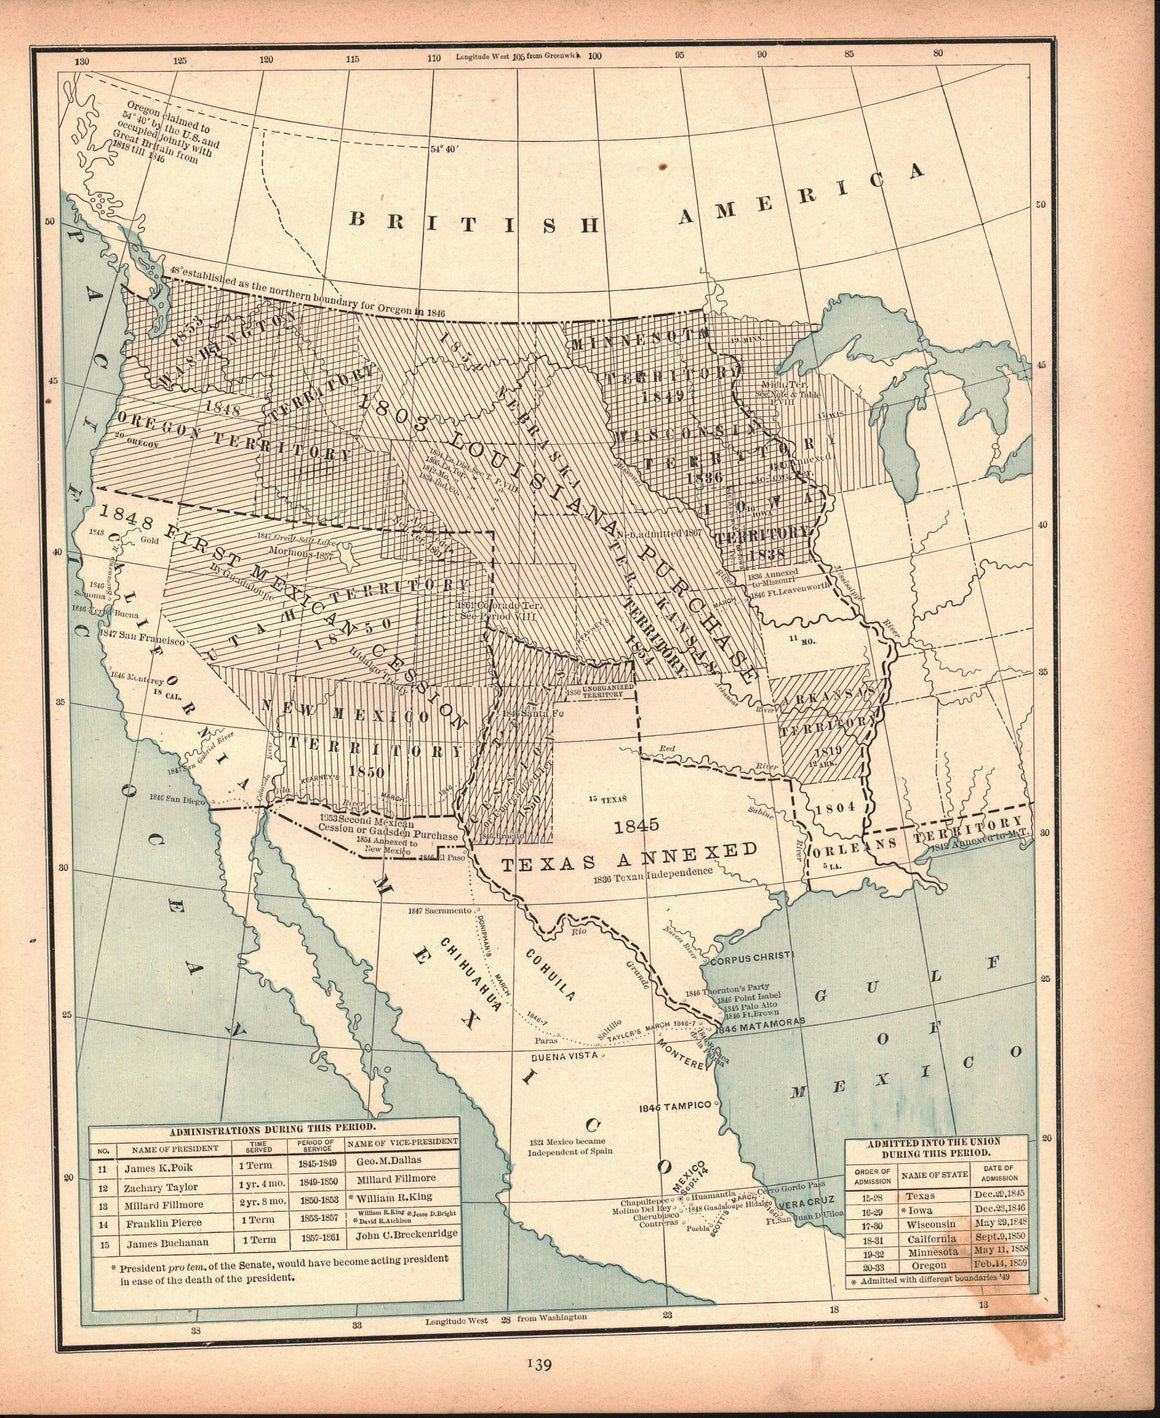 1887 Period of United States Expansion West - Cram